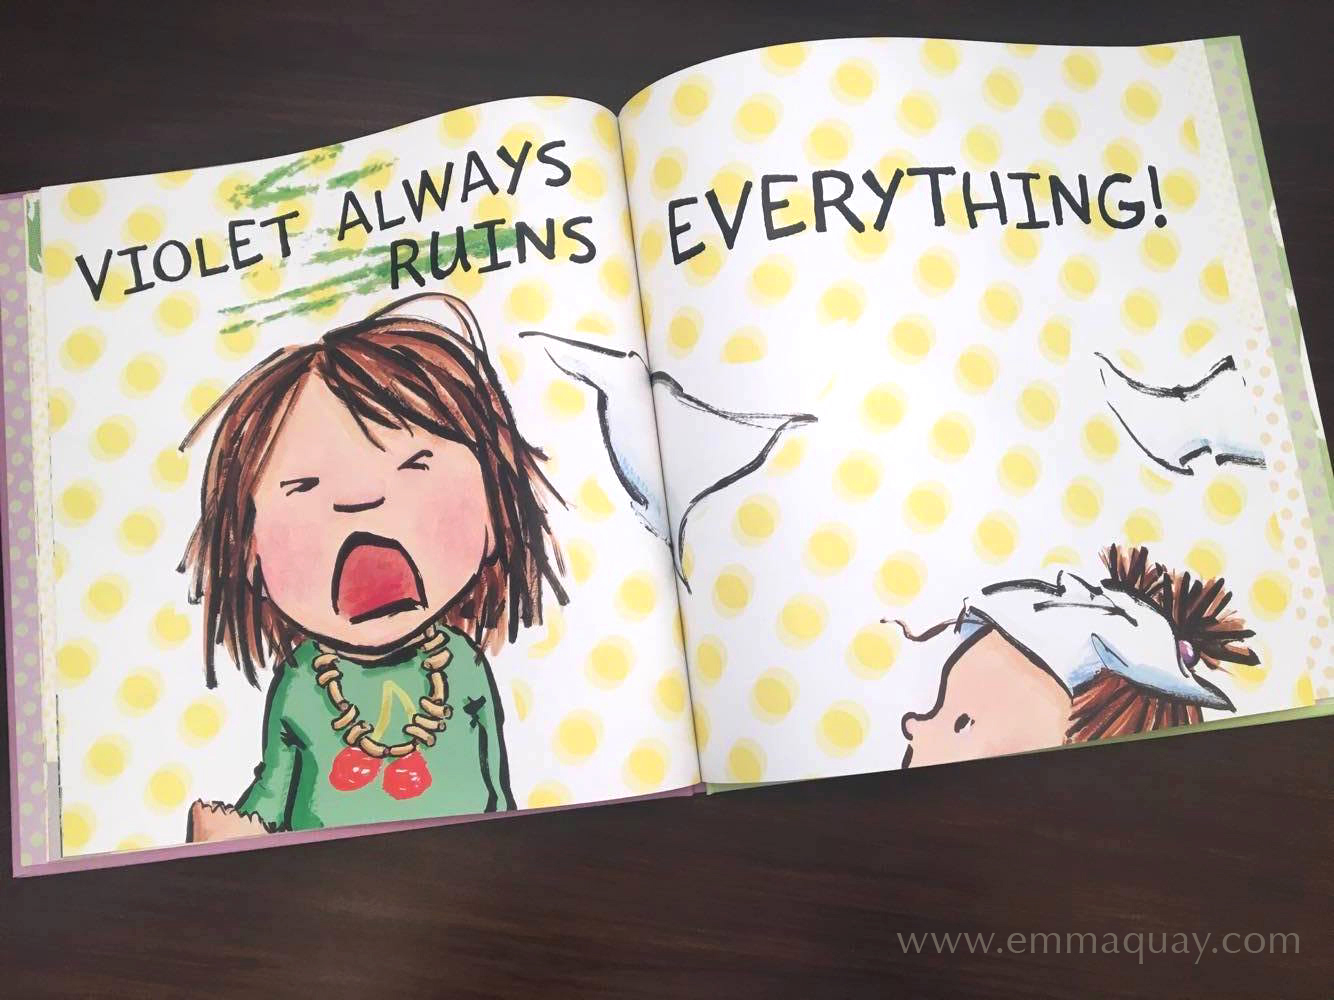 """Illustration by Emma Quay from SHRIEKING VIOLET (ABC Books) • http://www.emmaquay.com""""Violet always ruins everything!"""""""